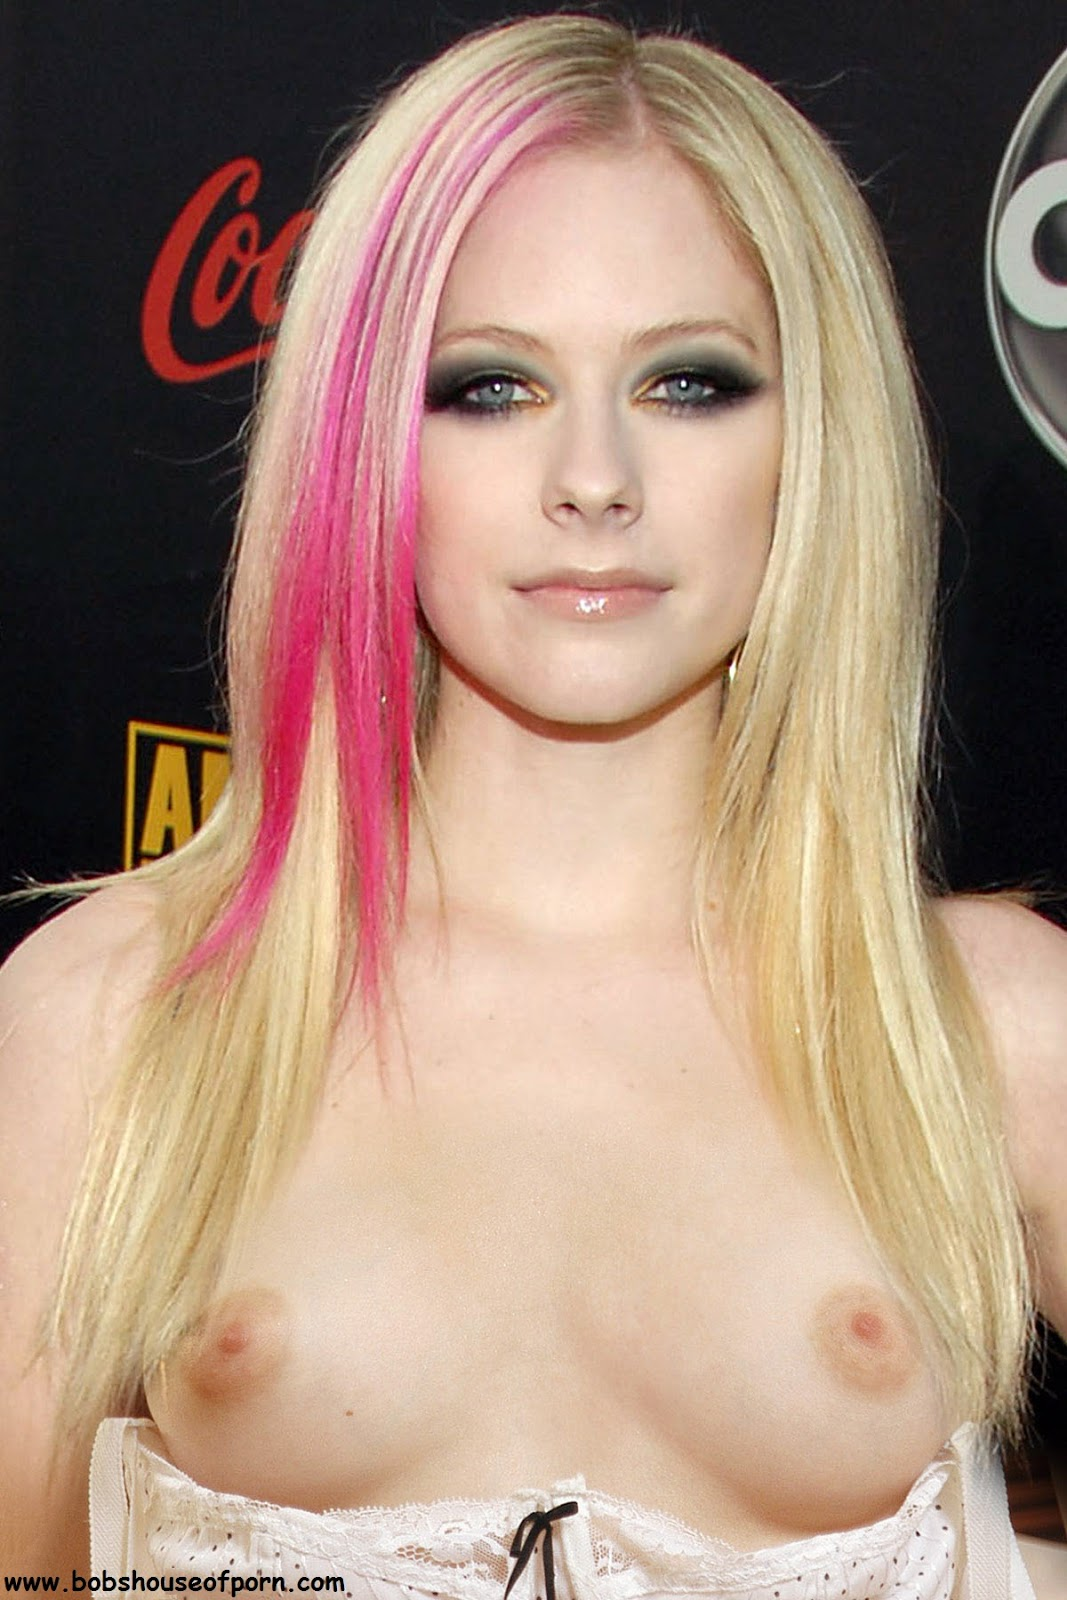 Girl naughty pics of avril lavigne the incredibles